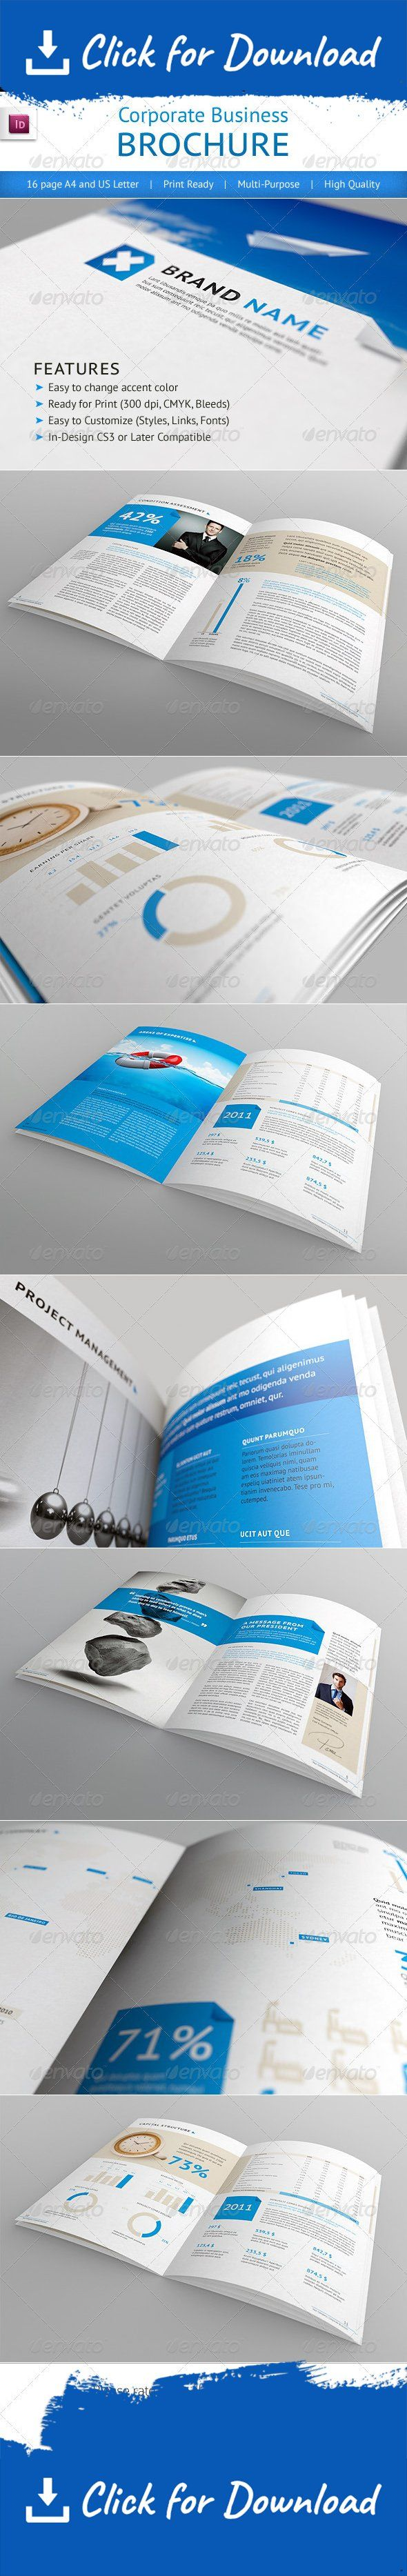 This is a 16 page professional In-Design brochure perfect for corporate business that needs clean, professional, modern brochure template design.   	Easy to edit, you can change Blue accent color throughout the whole document at once, paragraph and character styles included, text and images placed on separate layers, text aligned to grid. Resolution 300dpi / CMYK color / bleeds 3mm. Print dimensions: International A4 (210×297mm / 8.2×11.7in), US Letter (8.5×11in) 16 pages. Al...